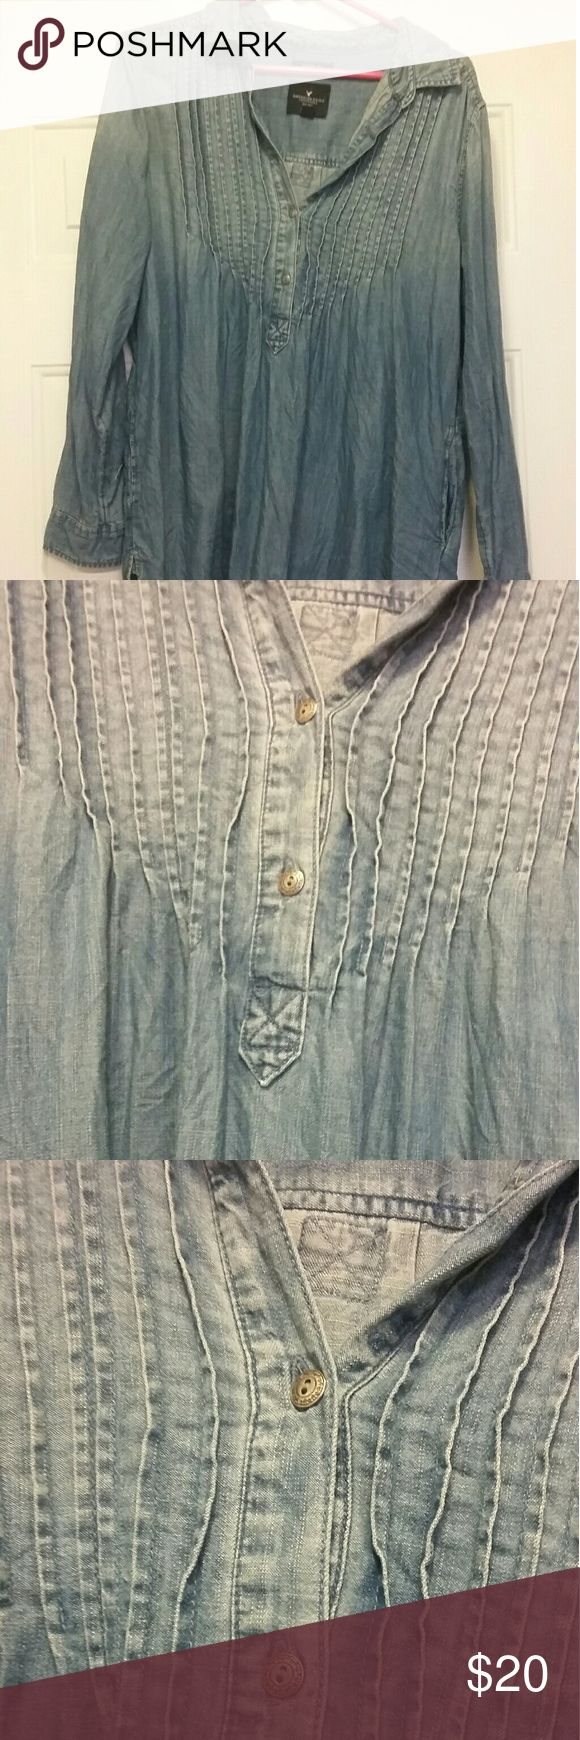 American Eagle denim tunic/blouse Denim. Long sleeved. With pockets. Buttons half way on the upper half of blouse. Cute with black jeans. Long enough to wear with leggings. American Eagle Outfitters Tops Tunics